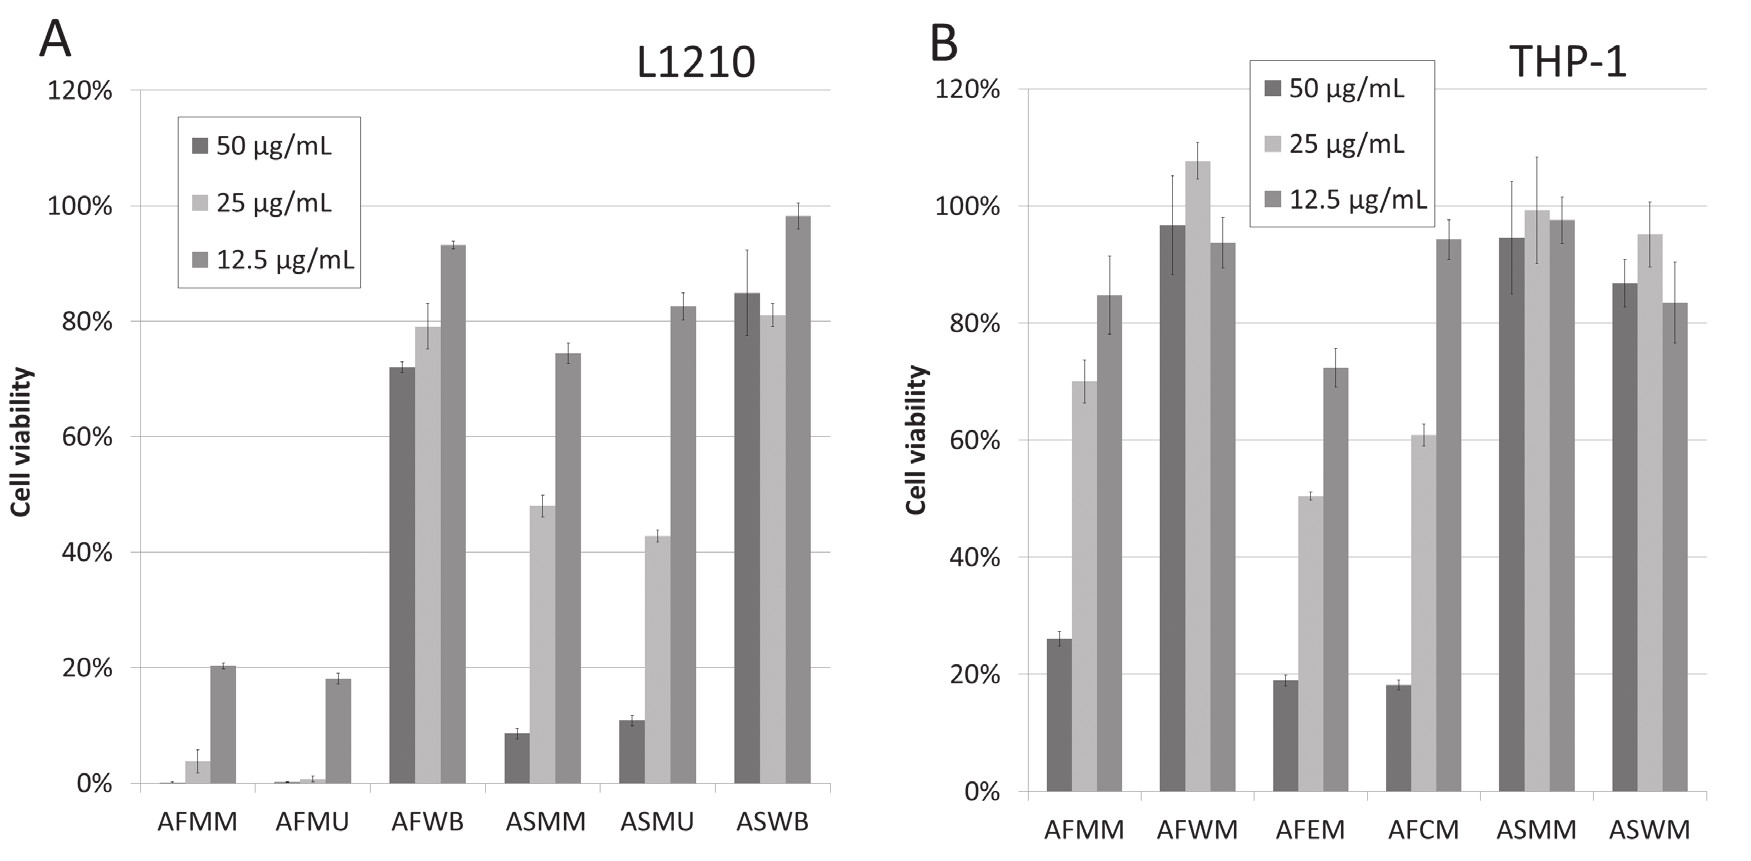 Fig. 4. Cytotoxic effects of the test extracts on L1210 (A) and THP-1 (B) cell lines. Cells were treated with the extracts at concentrations of 50, 25, and 12.5 μg/mL and the cell viability was measured 24 h later using WST-1 reagent. The results are expressed as the mean ± SE for three independent experiments  AFMM – methanolic flowers plus leaves extract obtained by microwave extraction, AFMU – methanolic flowers plus leaves extract obtained by ultrasonic extraction, AFWB – aqueous flowers plus leaves extract obtained by boiling, AFWM – aqueous flowers plus leaves extract obtained by microwave extraction, ASMM – methanolic stems extract obtained by microwave extraction, ASMU – methanolic stems extract obtained by ultrasonic extraction, ASWB – aqueous stems extract obtained by boiling, ASWM – aqueous stems extract obtained by microwave extraction, AFEM – ethanolic flowers plus leaves extract obtained by microwave extraction, AFCM – chloroform flowers plus leaves extract obtained by microwave extraction